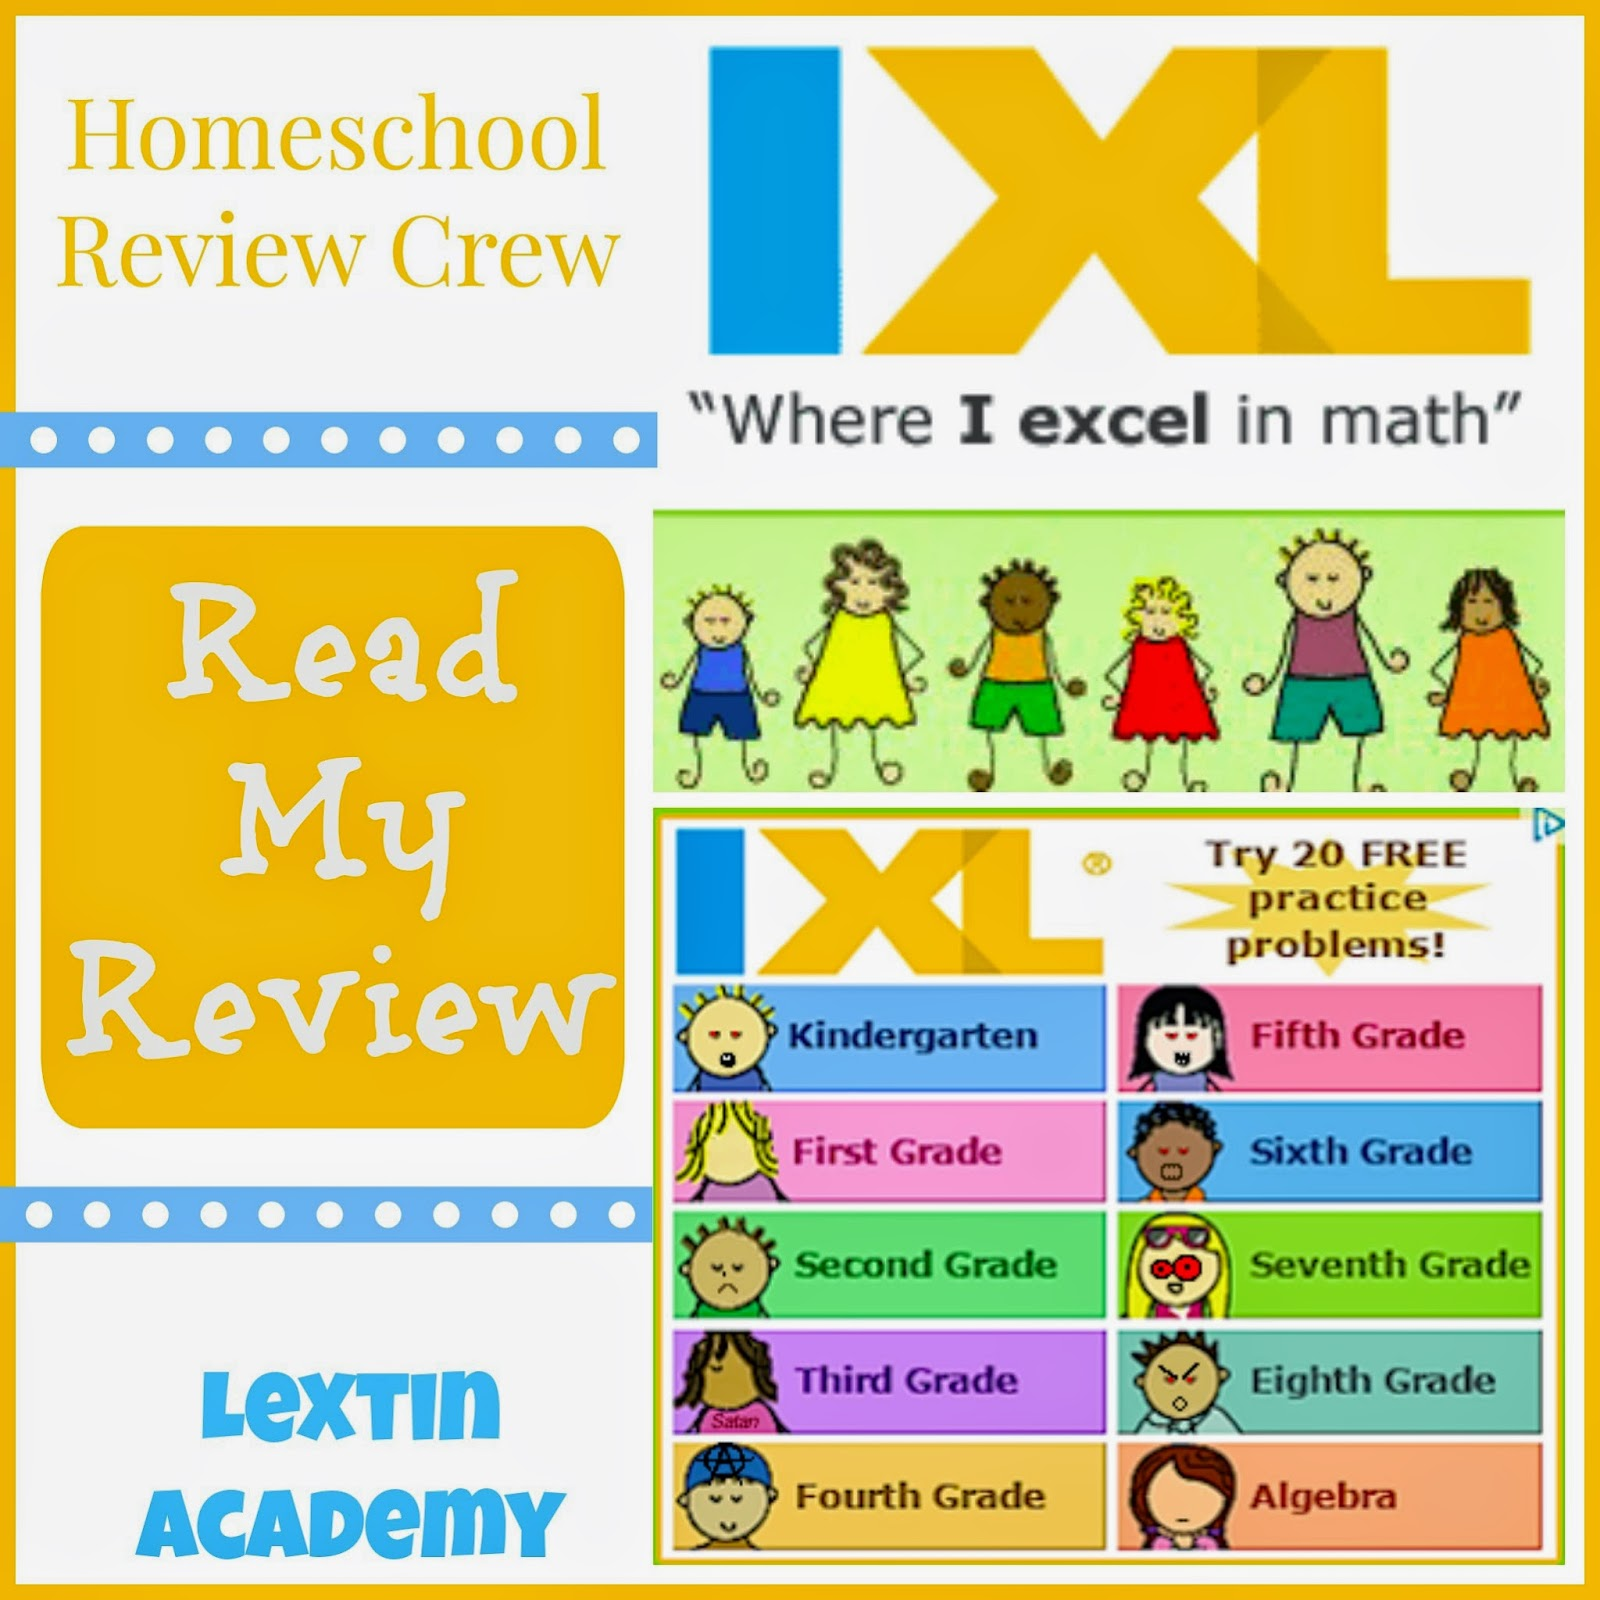 review crew ixl math and language arts lextin eclectic. Black Bedroom Furniture Sets. Home Design Ideas